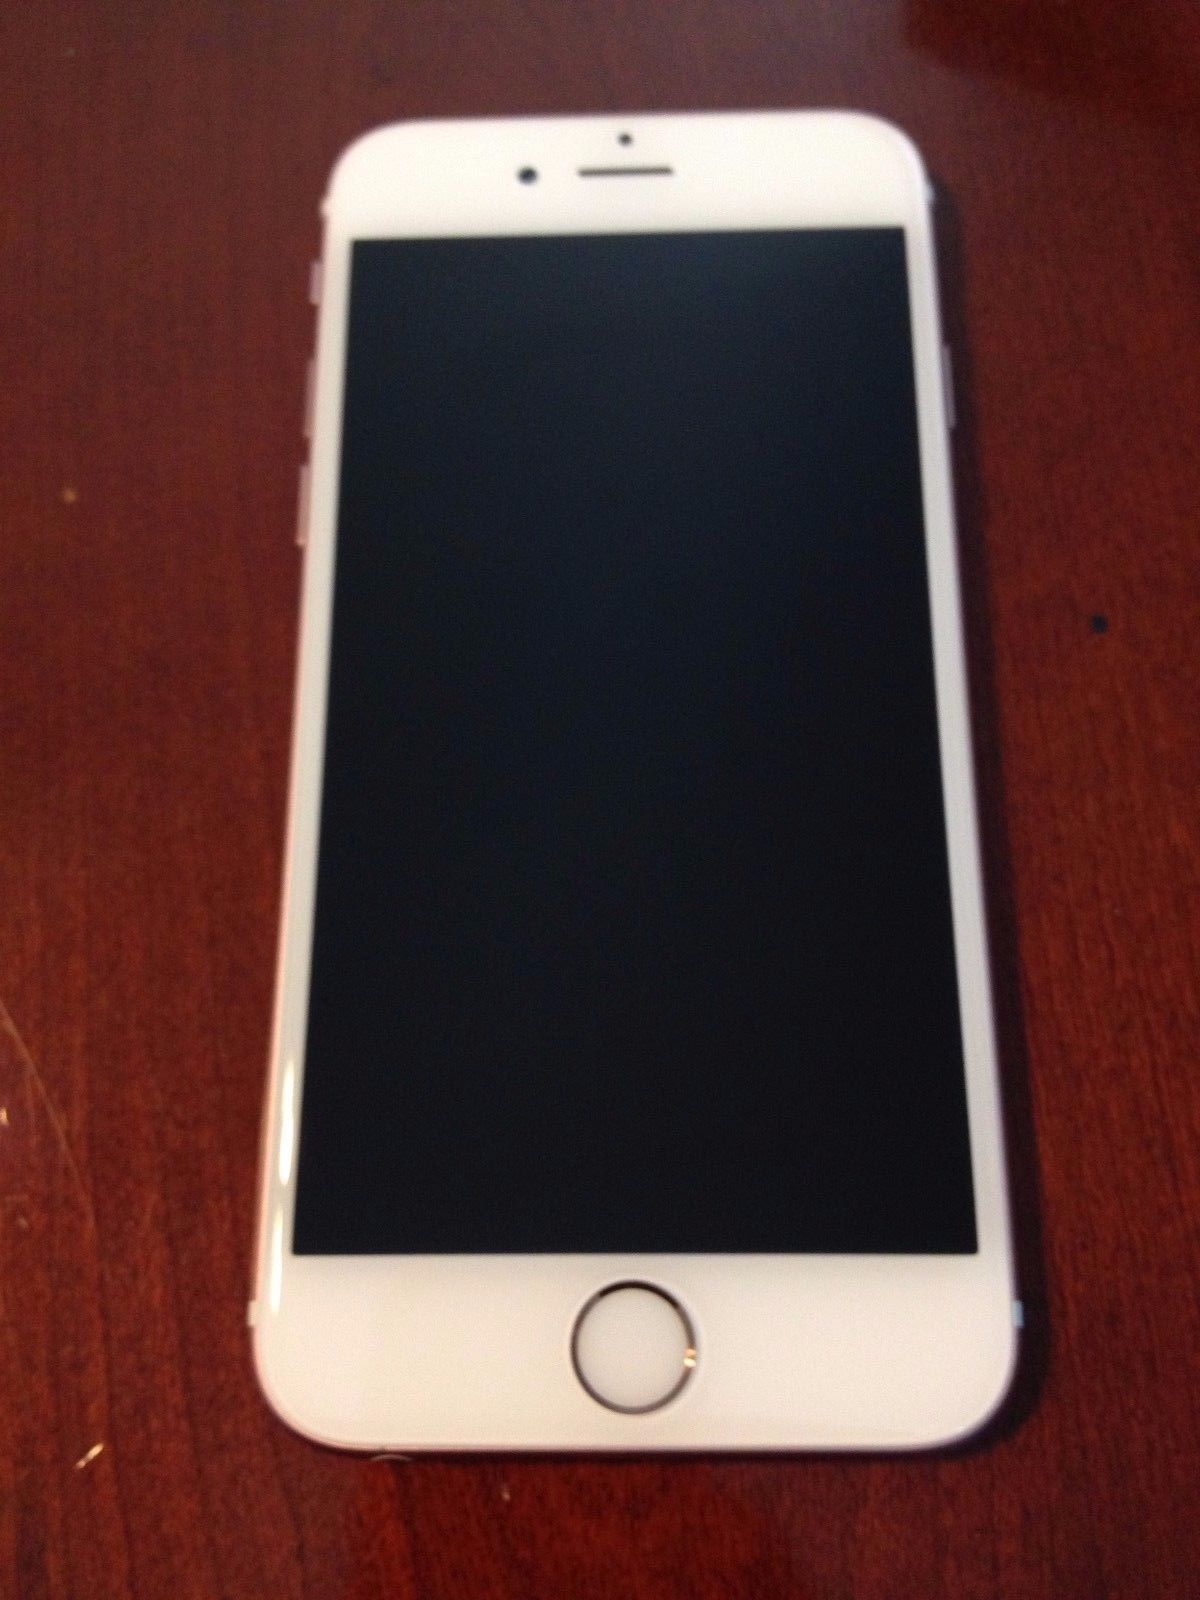 Apple iPhone 6s (Latest Model) - 64GB - Silver (Verizon/Unlocked)